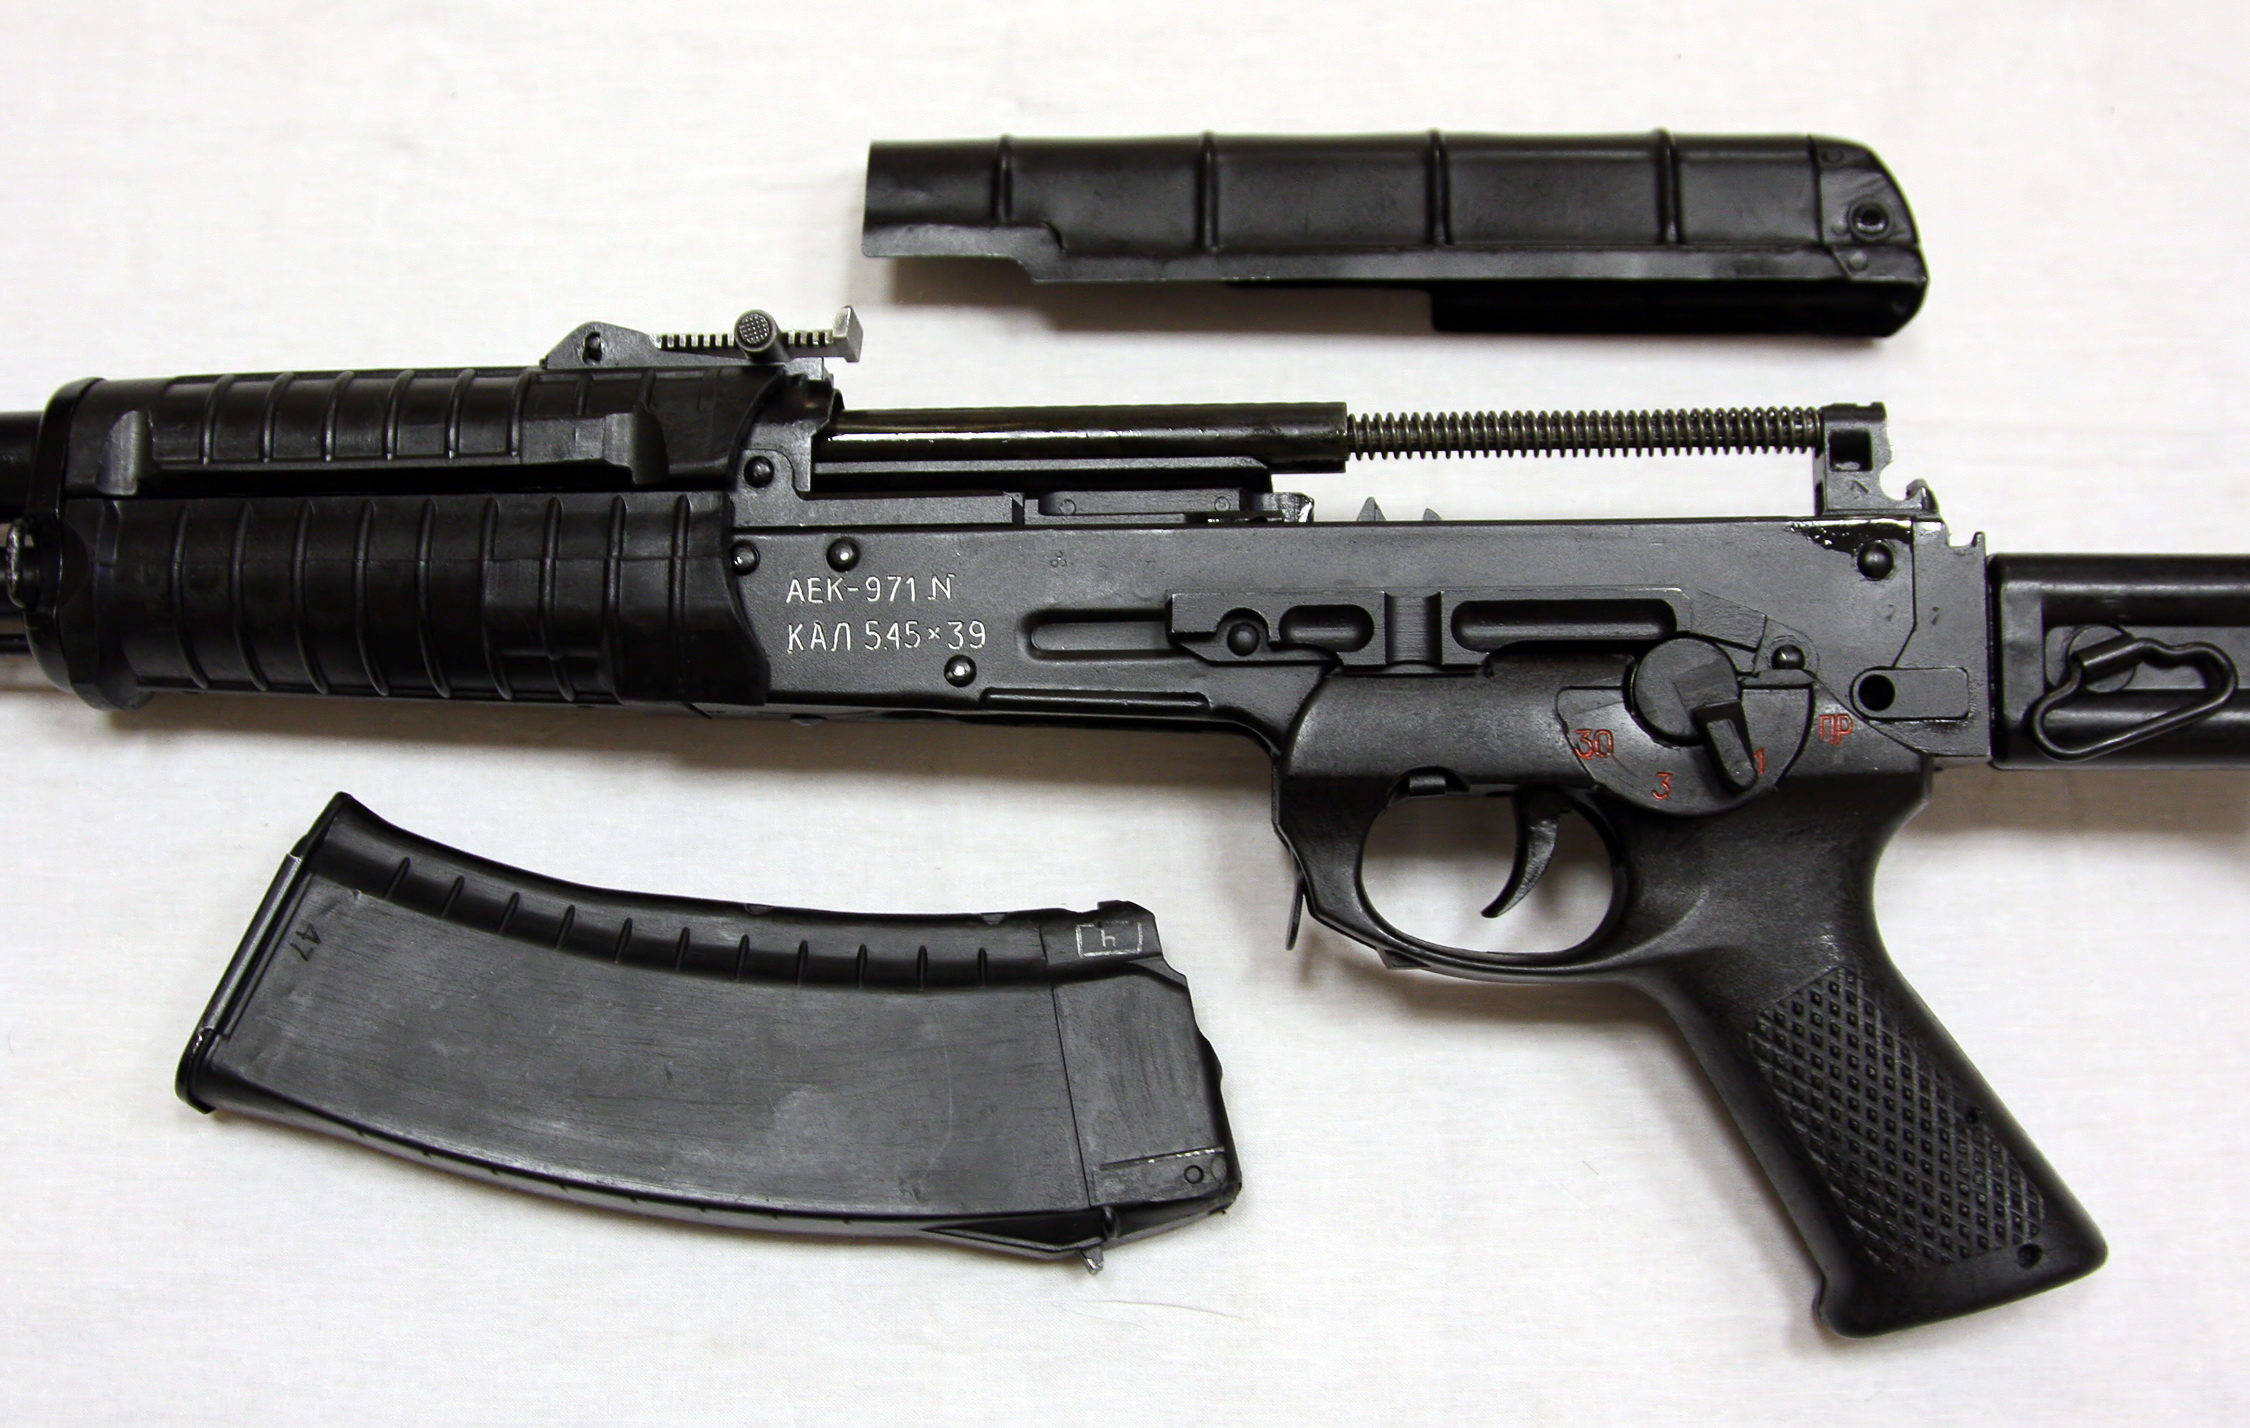 Amazing AEK-971 Pictures & Backgrounds